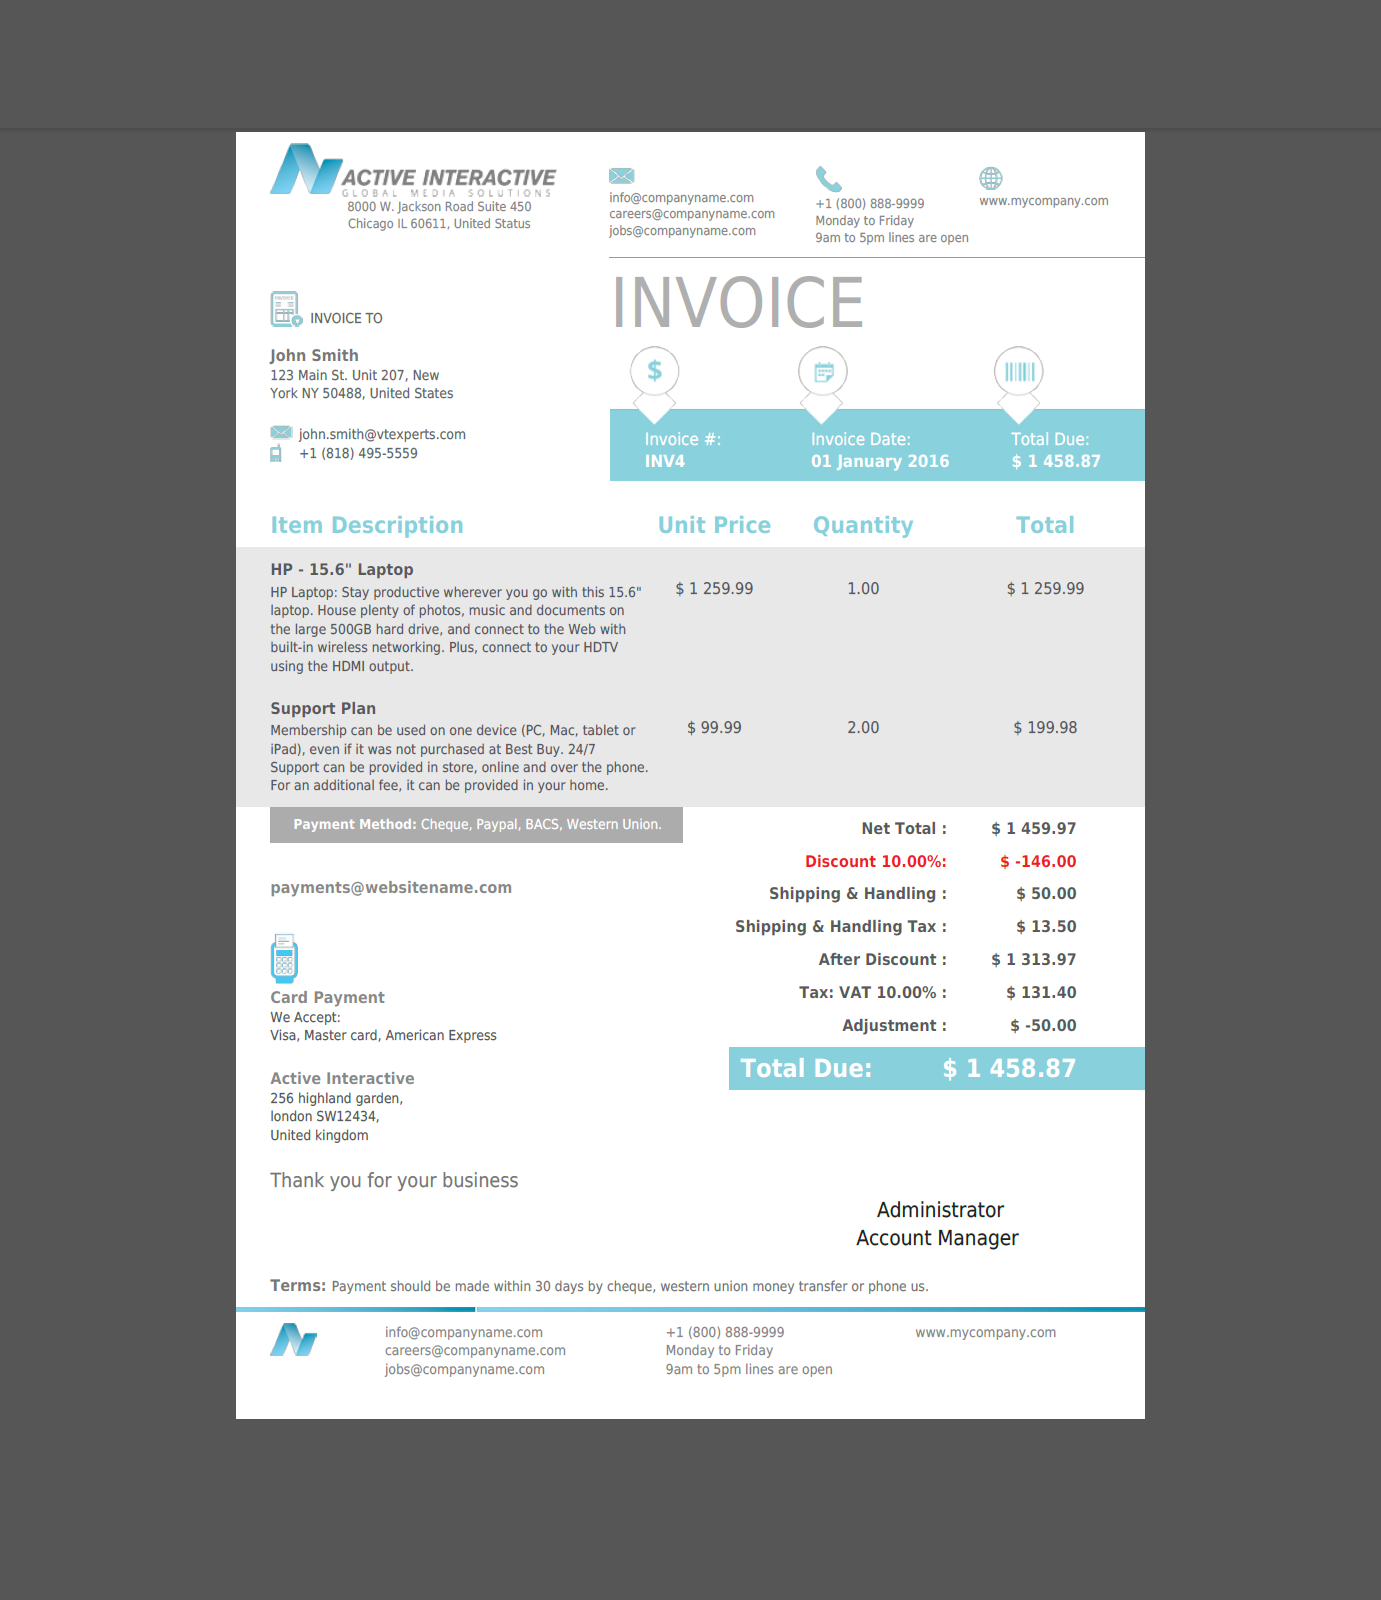 vtiger experts | vtiger pdf template (quote/invoice/so/po) - (cyan), Simple invoice